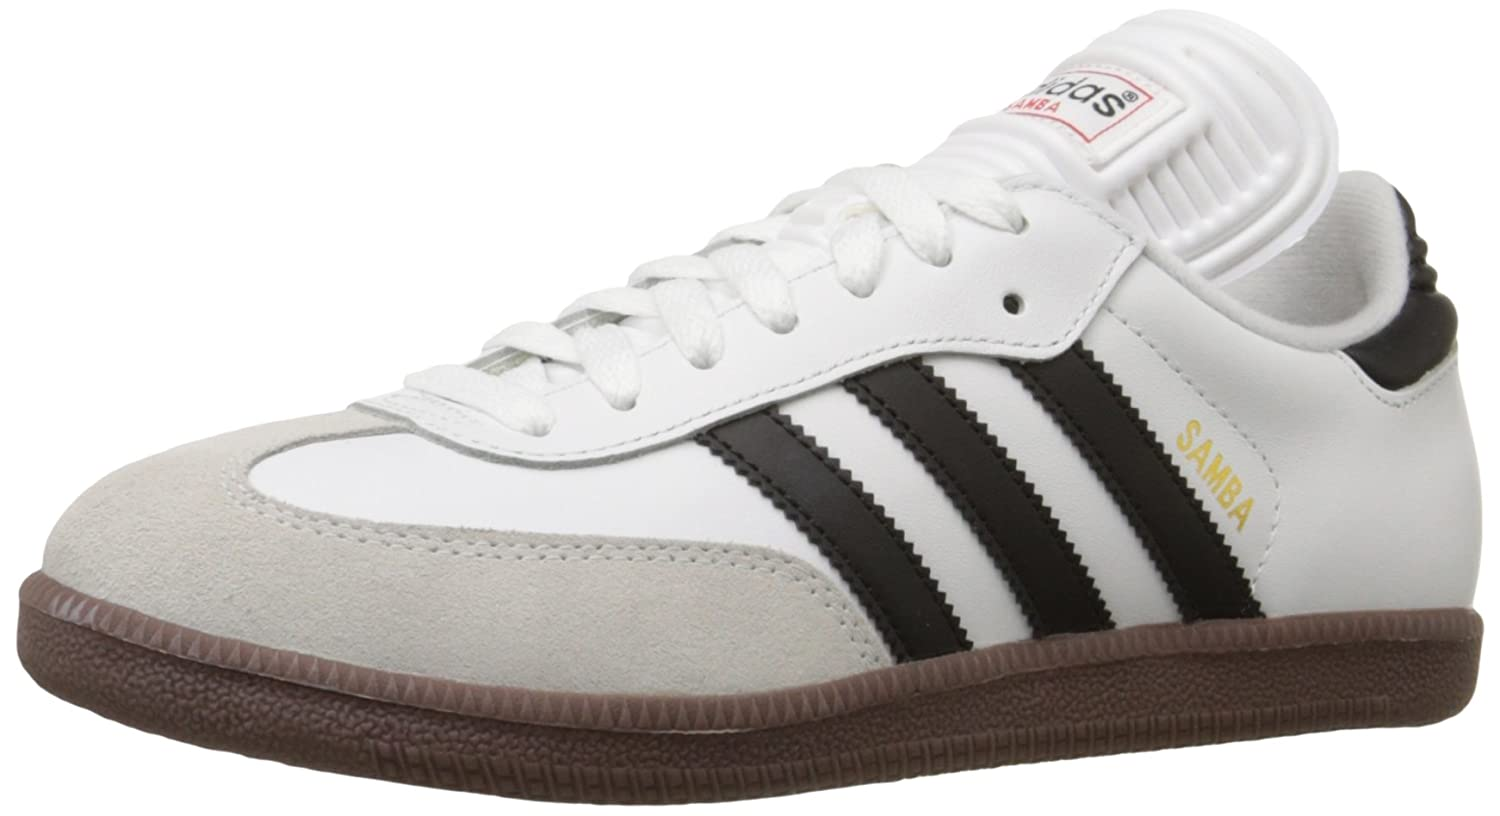 co Amazon Herenmode Schoenen Tassen Adidas uk Sneakers Samba Classic zfA1Ca